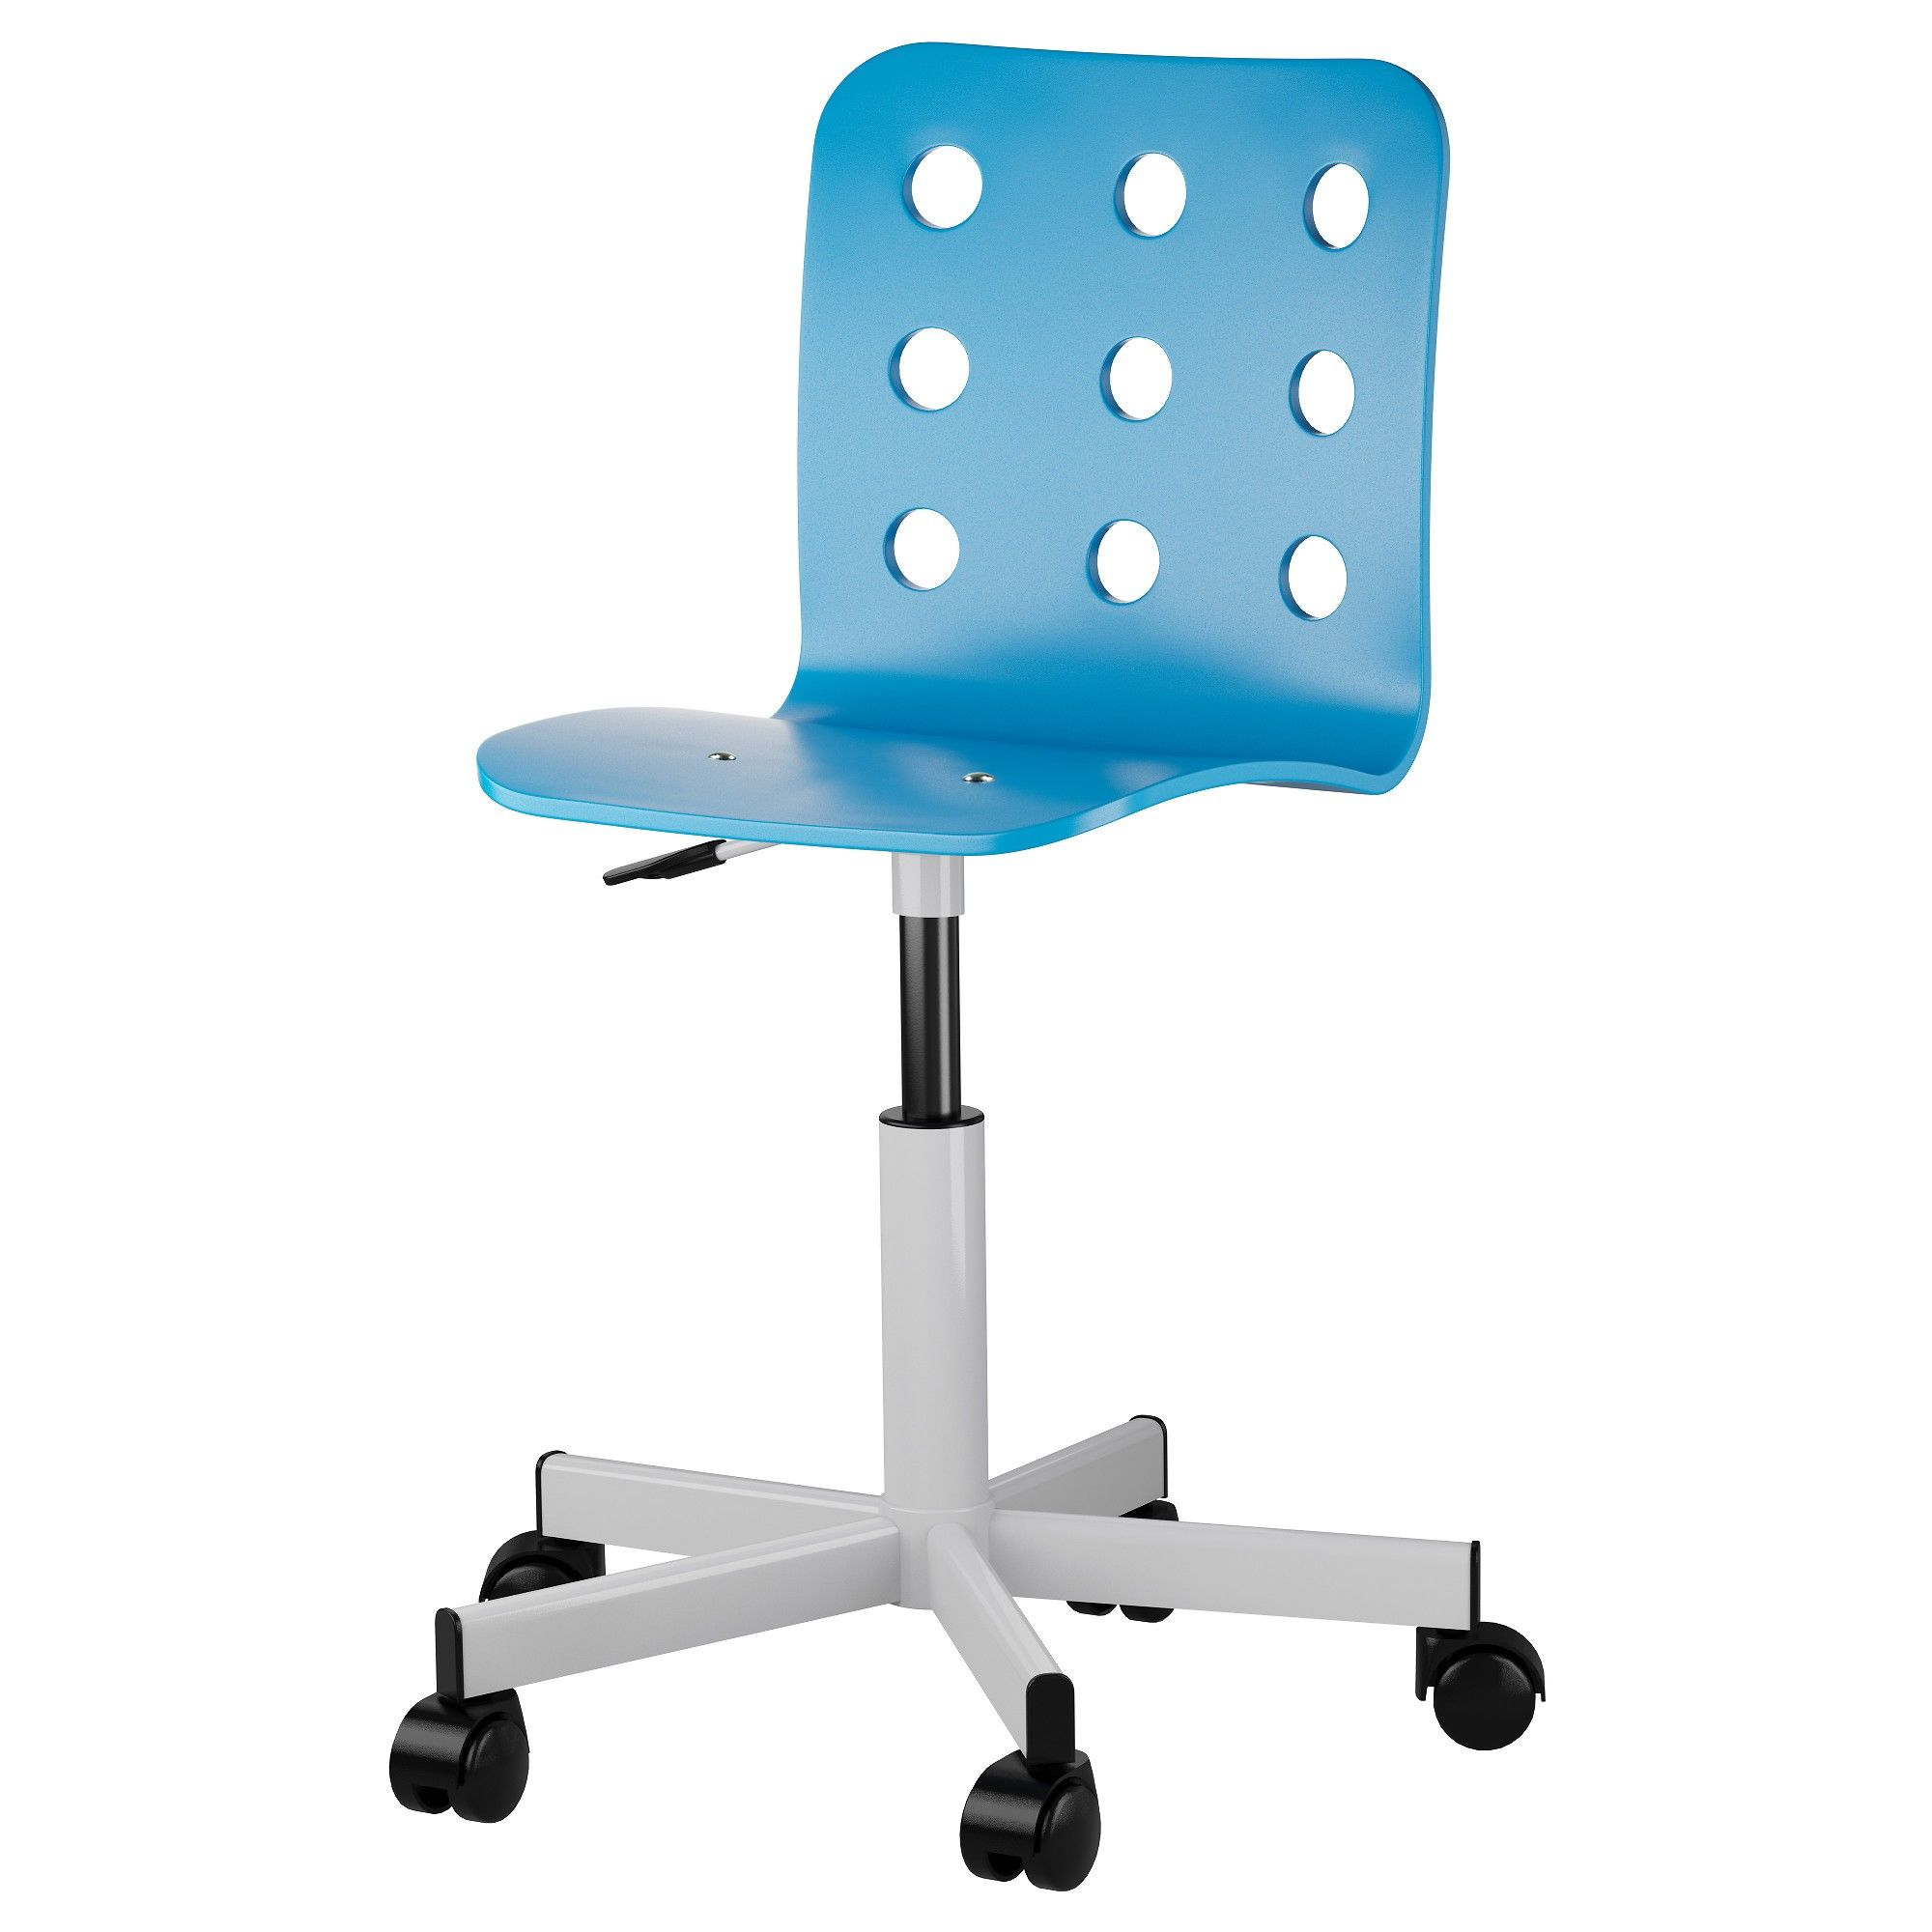 Jules Junior Desk Chair - Blue And Silver Color - Home Essentials